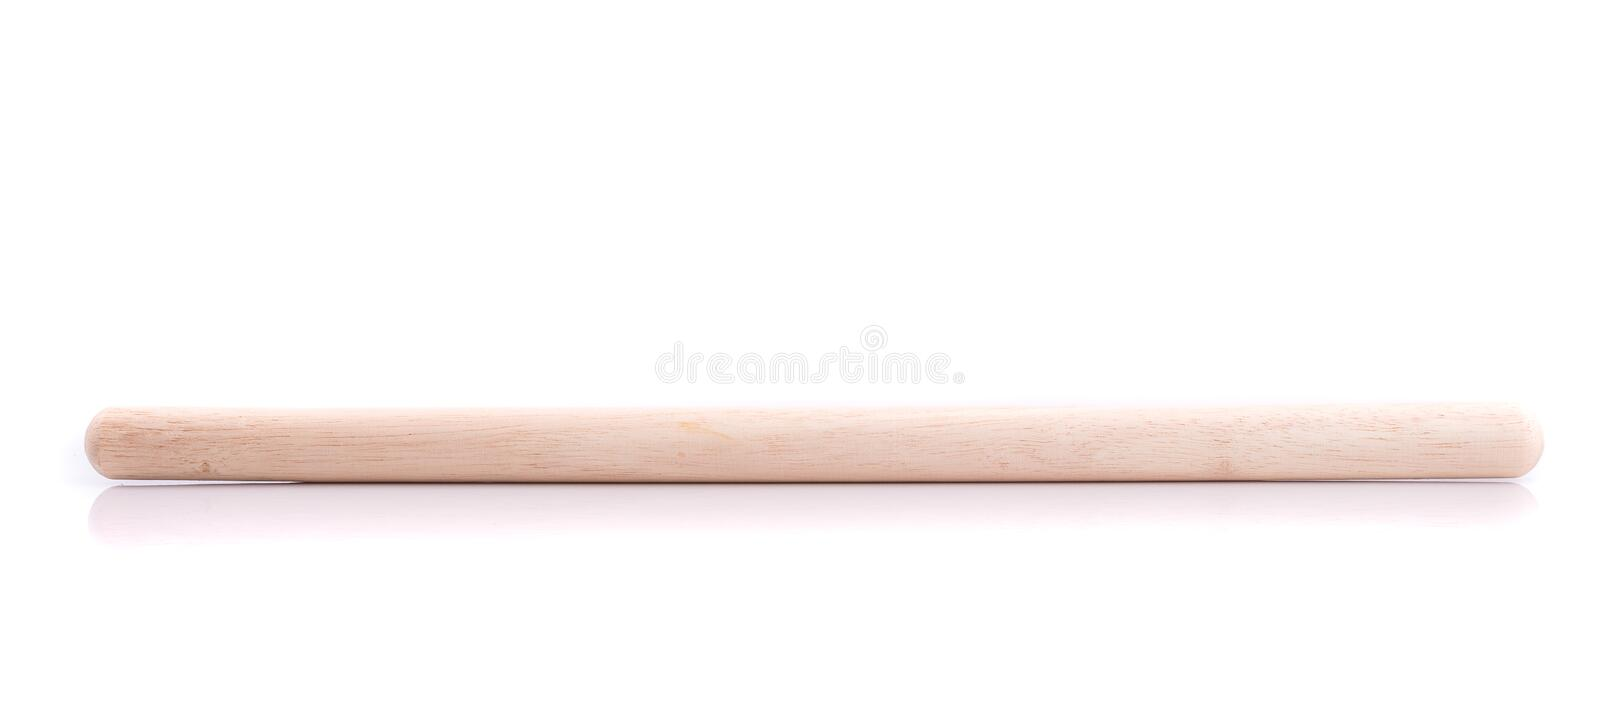 Long white wooden stick use for bakery isolated on white background. Close up long white wooden stick use for bakery isolated on white background royalty free stock image